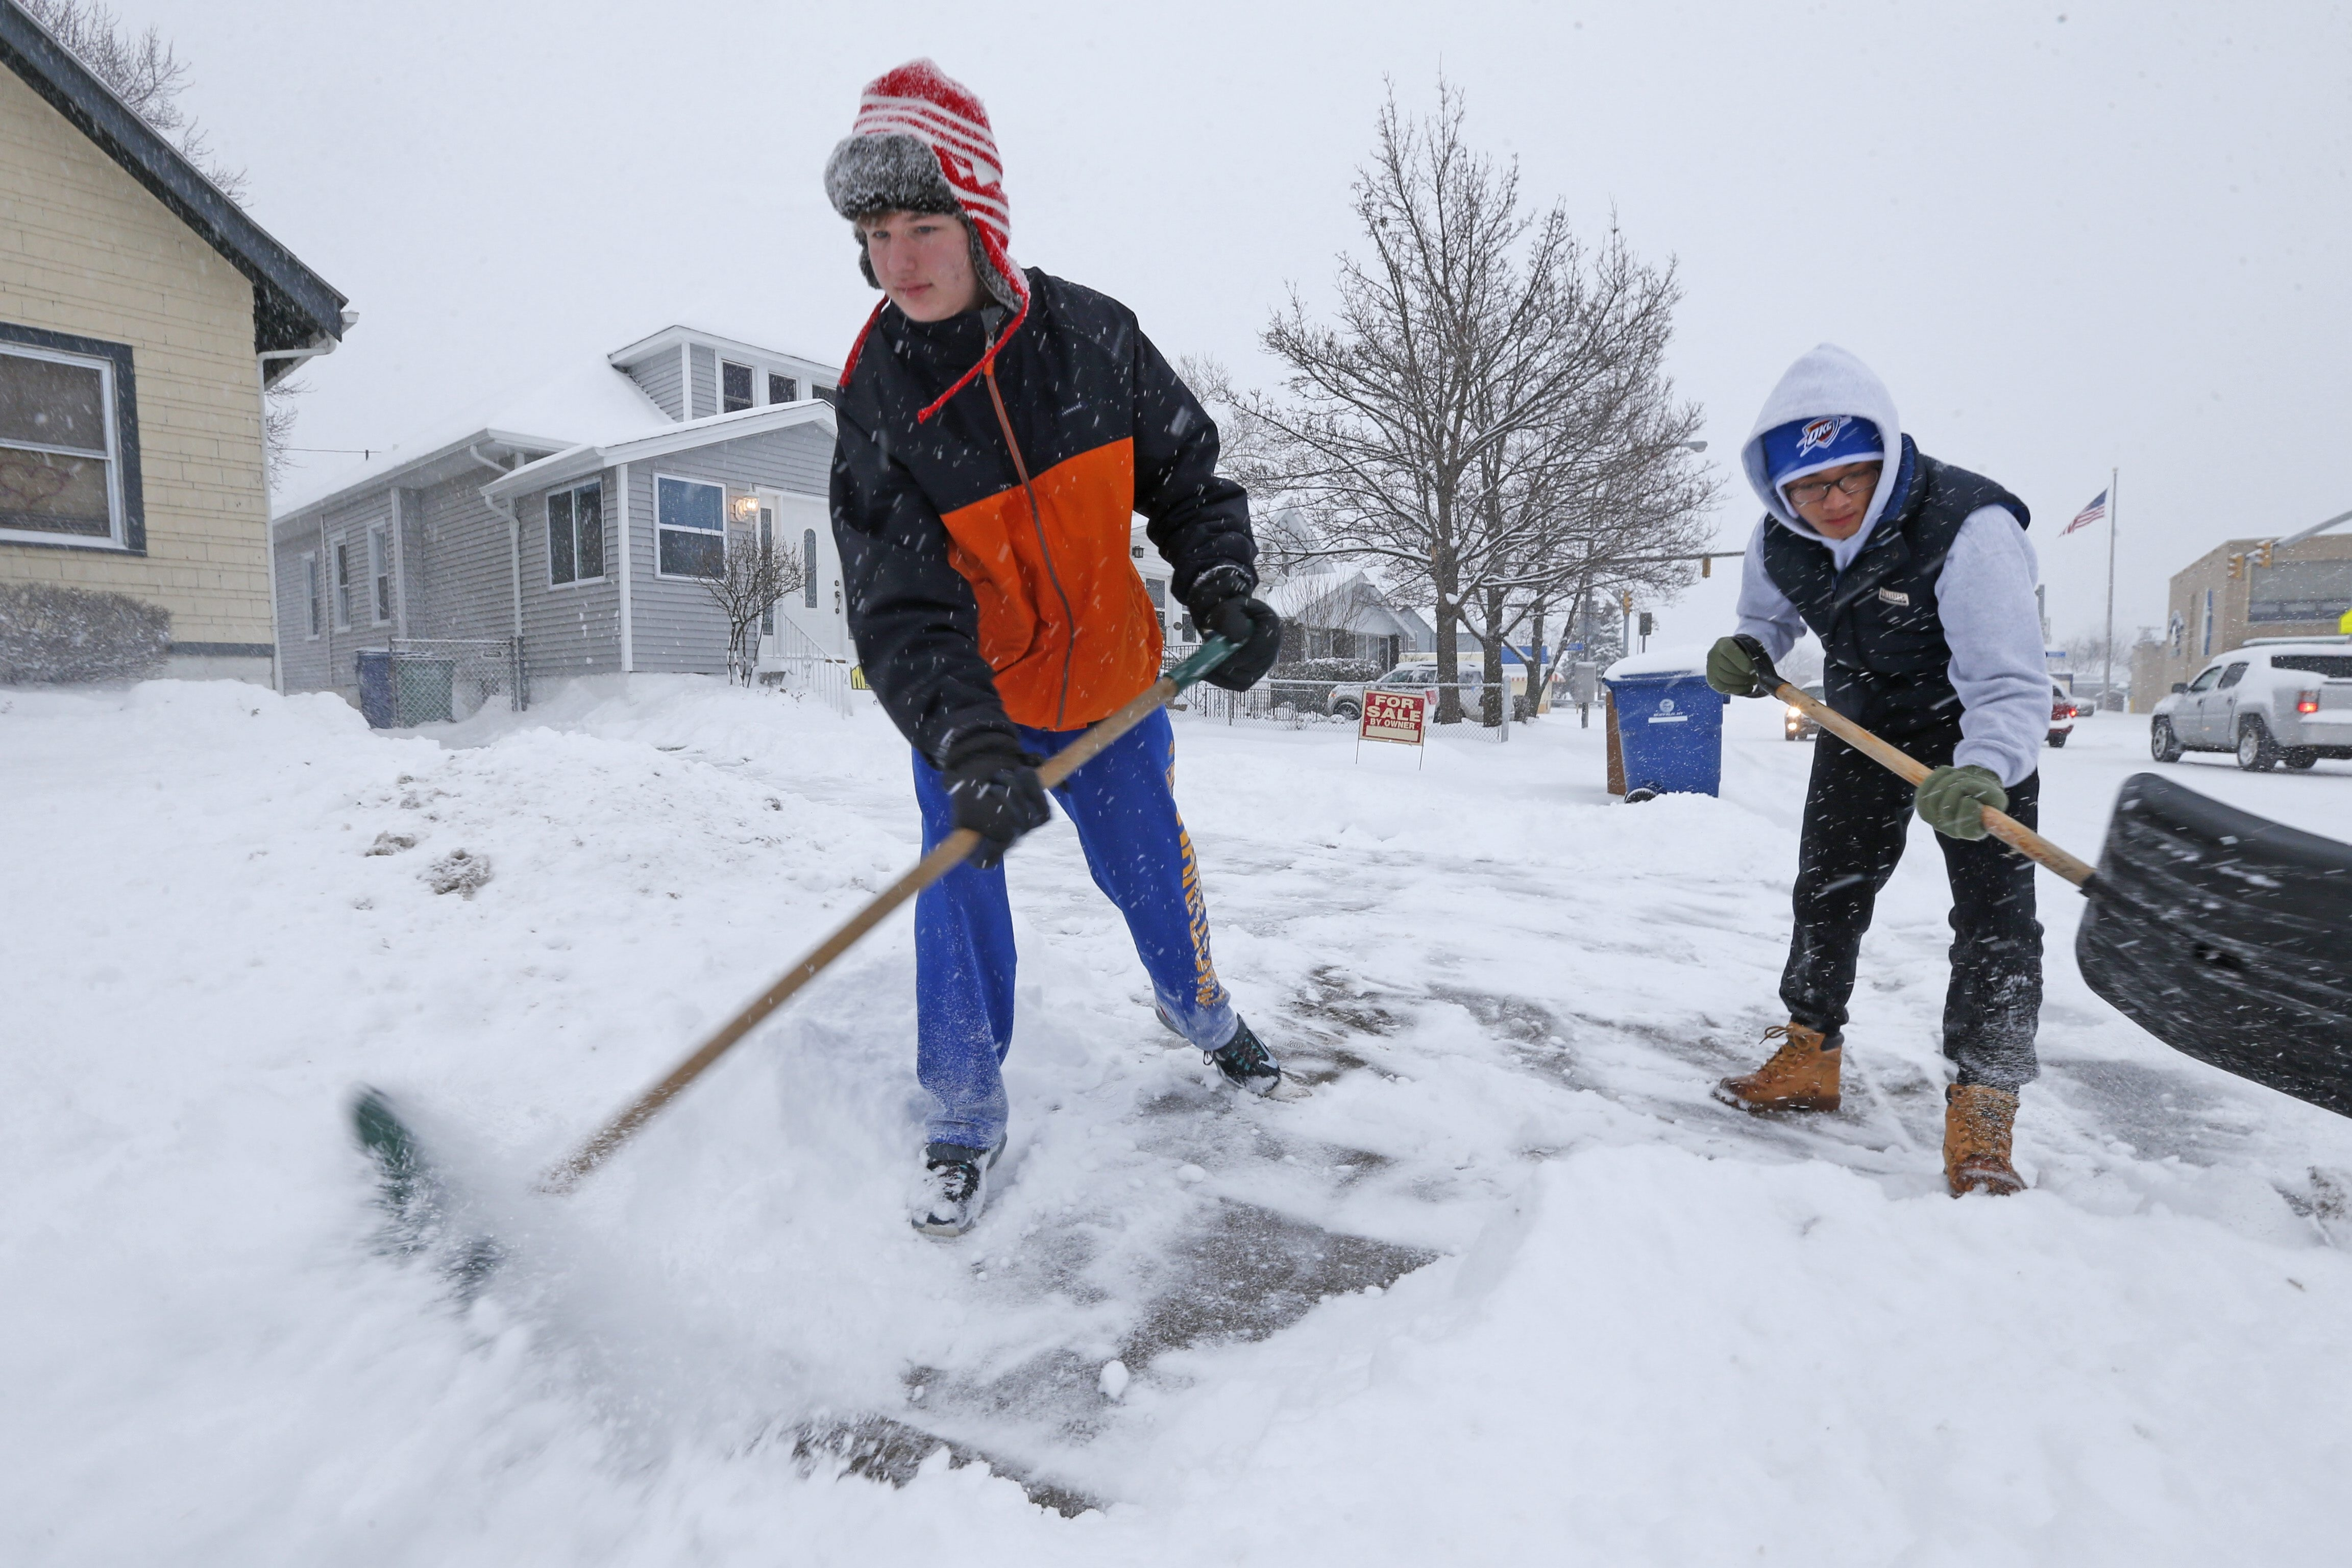 Joe Snyder, 16, left, and his brother Benny Yu, 17, try to keep up with the snow outside their Abbott Road home in Buffalo, where 5 to 6 inches fell on Sunday.